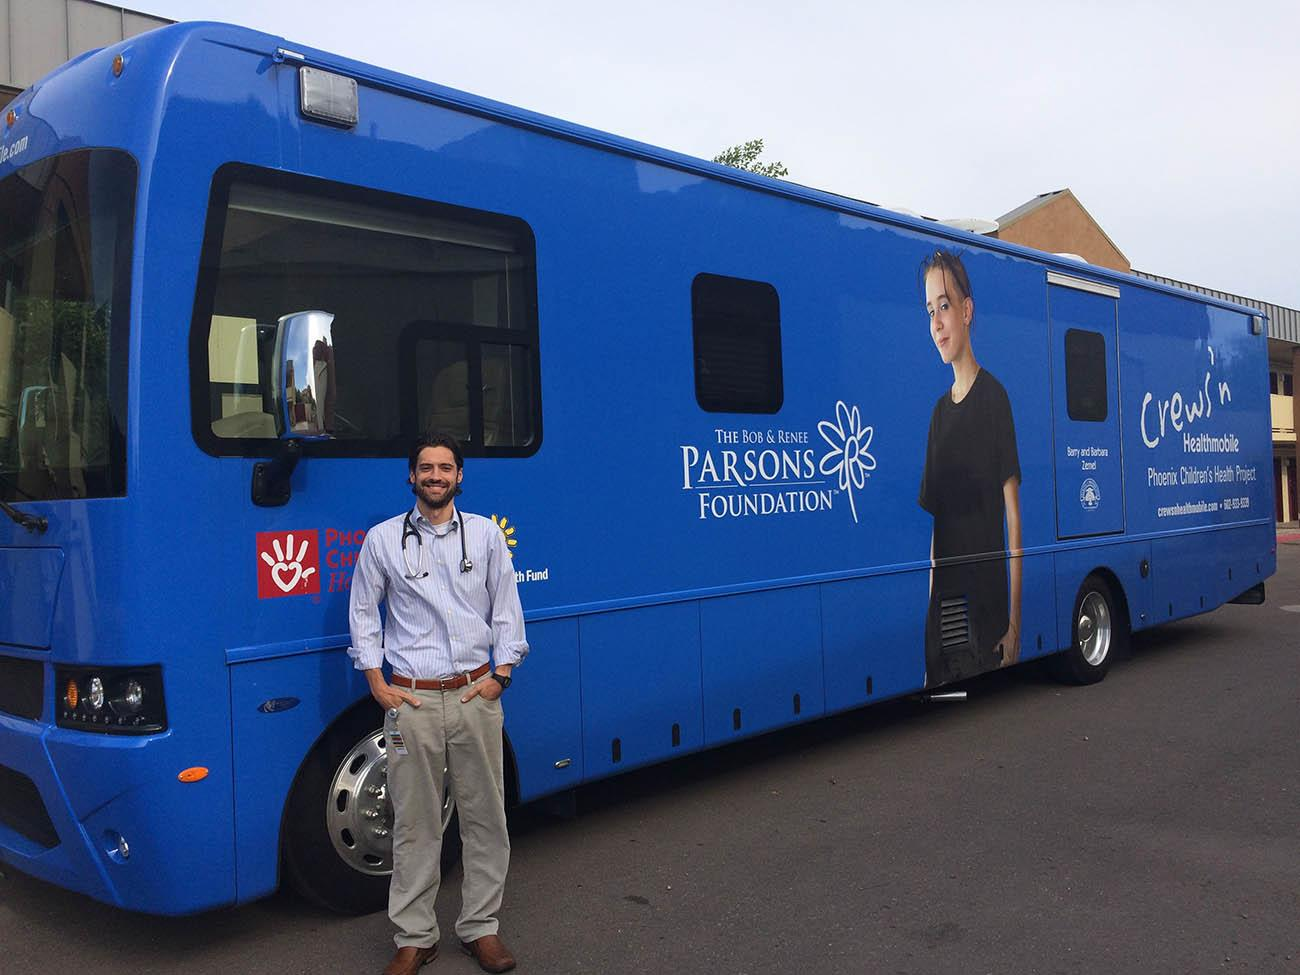 Gary Kirkilas, DO stands in front of the Mobile Health Unit he uses to reach homeless and disadvantaged communities. Dr. Kirkilas practices pediatrics at Phoenix Children's Hospital.